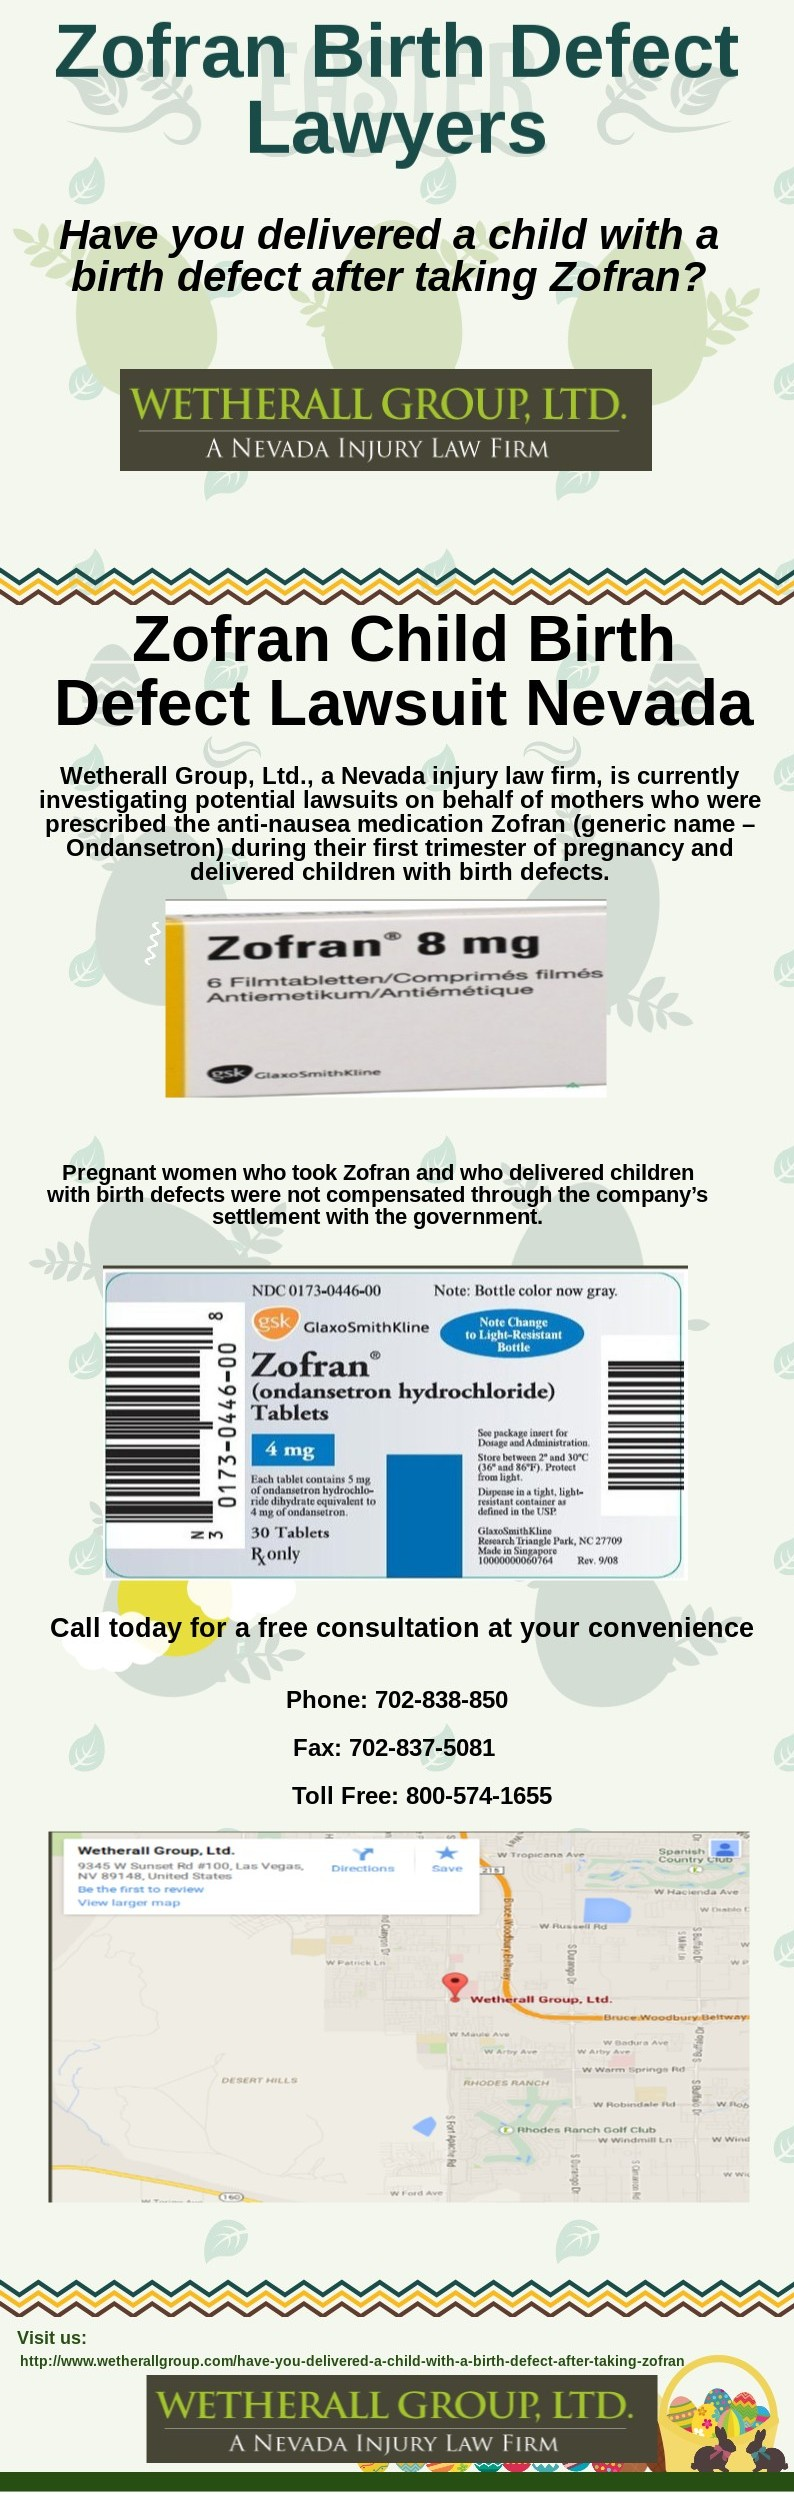 Pin on Zofran Pregnancy Birth Defects Lawyers in Las Vegas